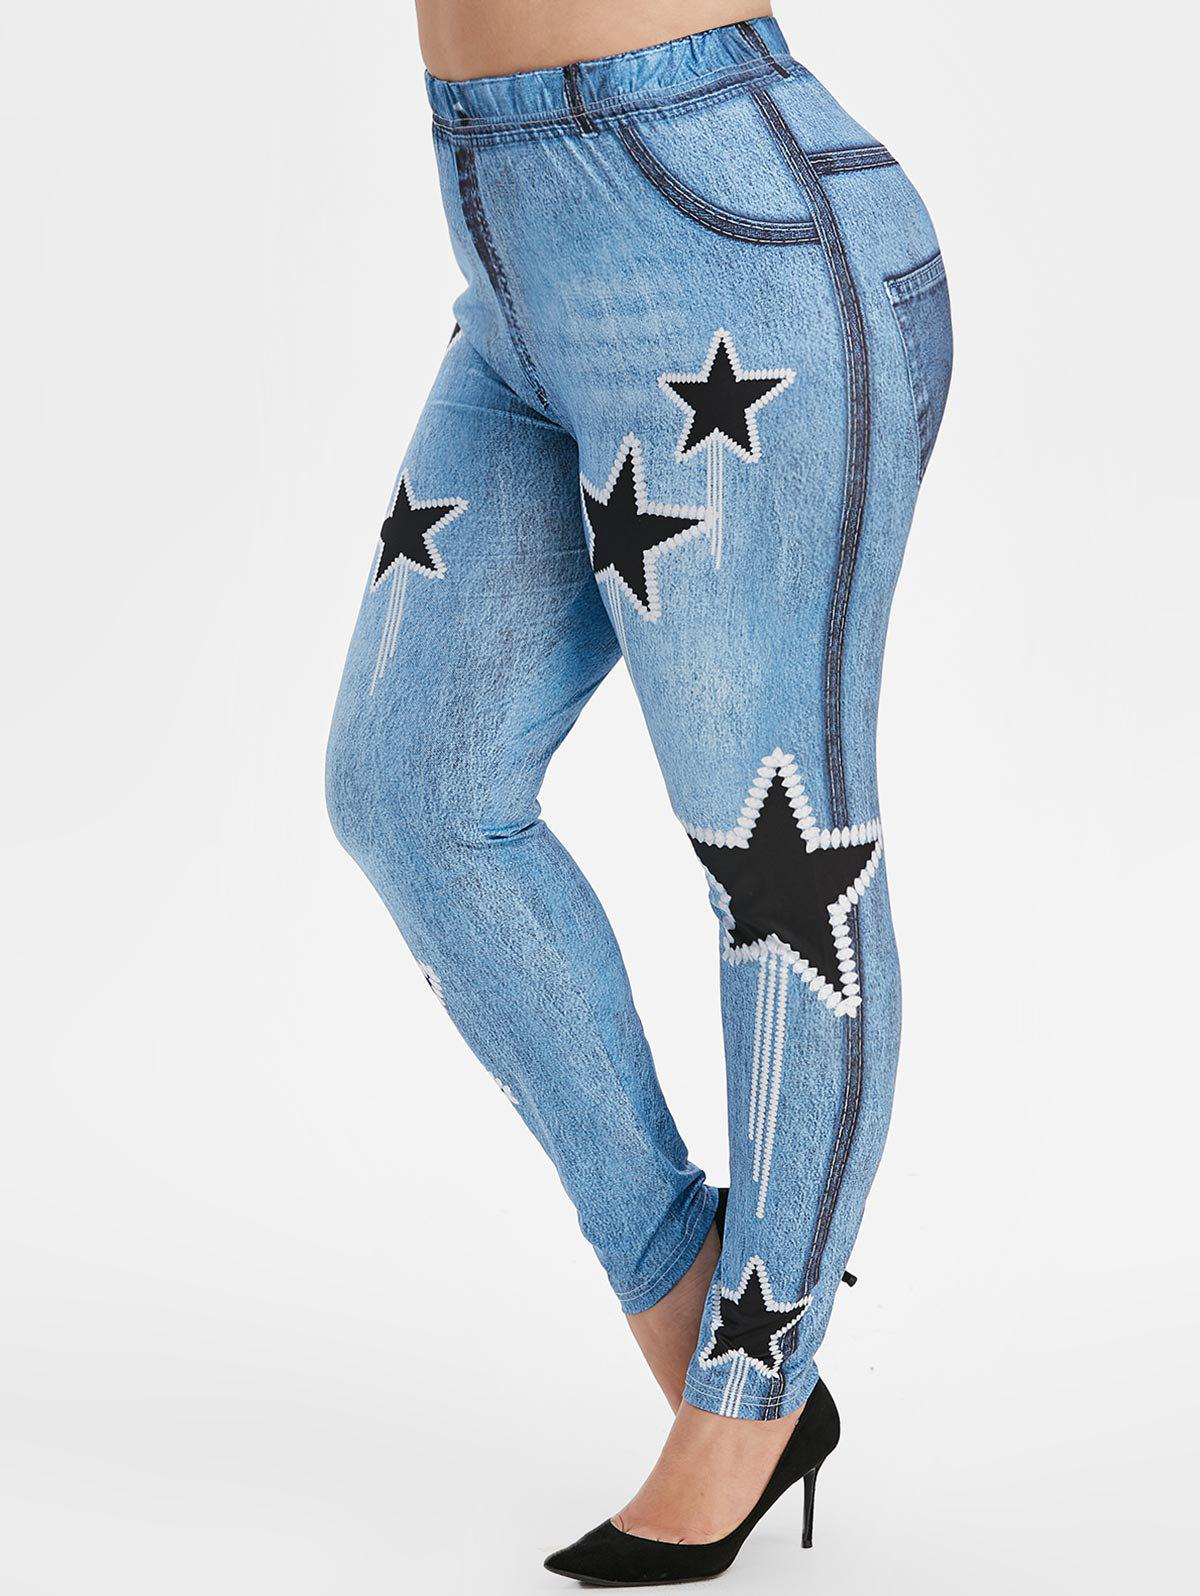 Plus Size Star Print Skinny 3D Jeggings - BLUE IVY 4X